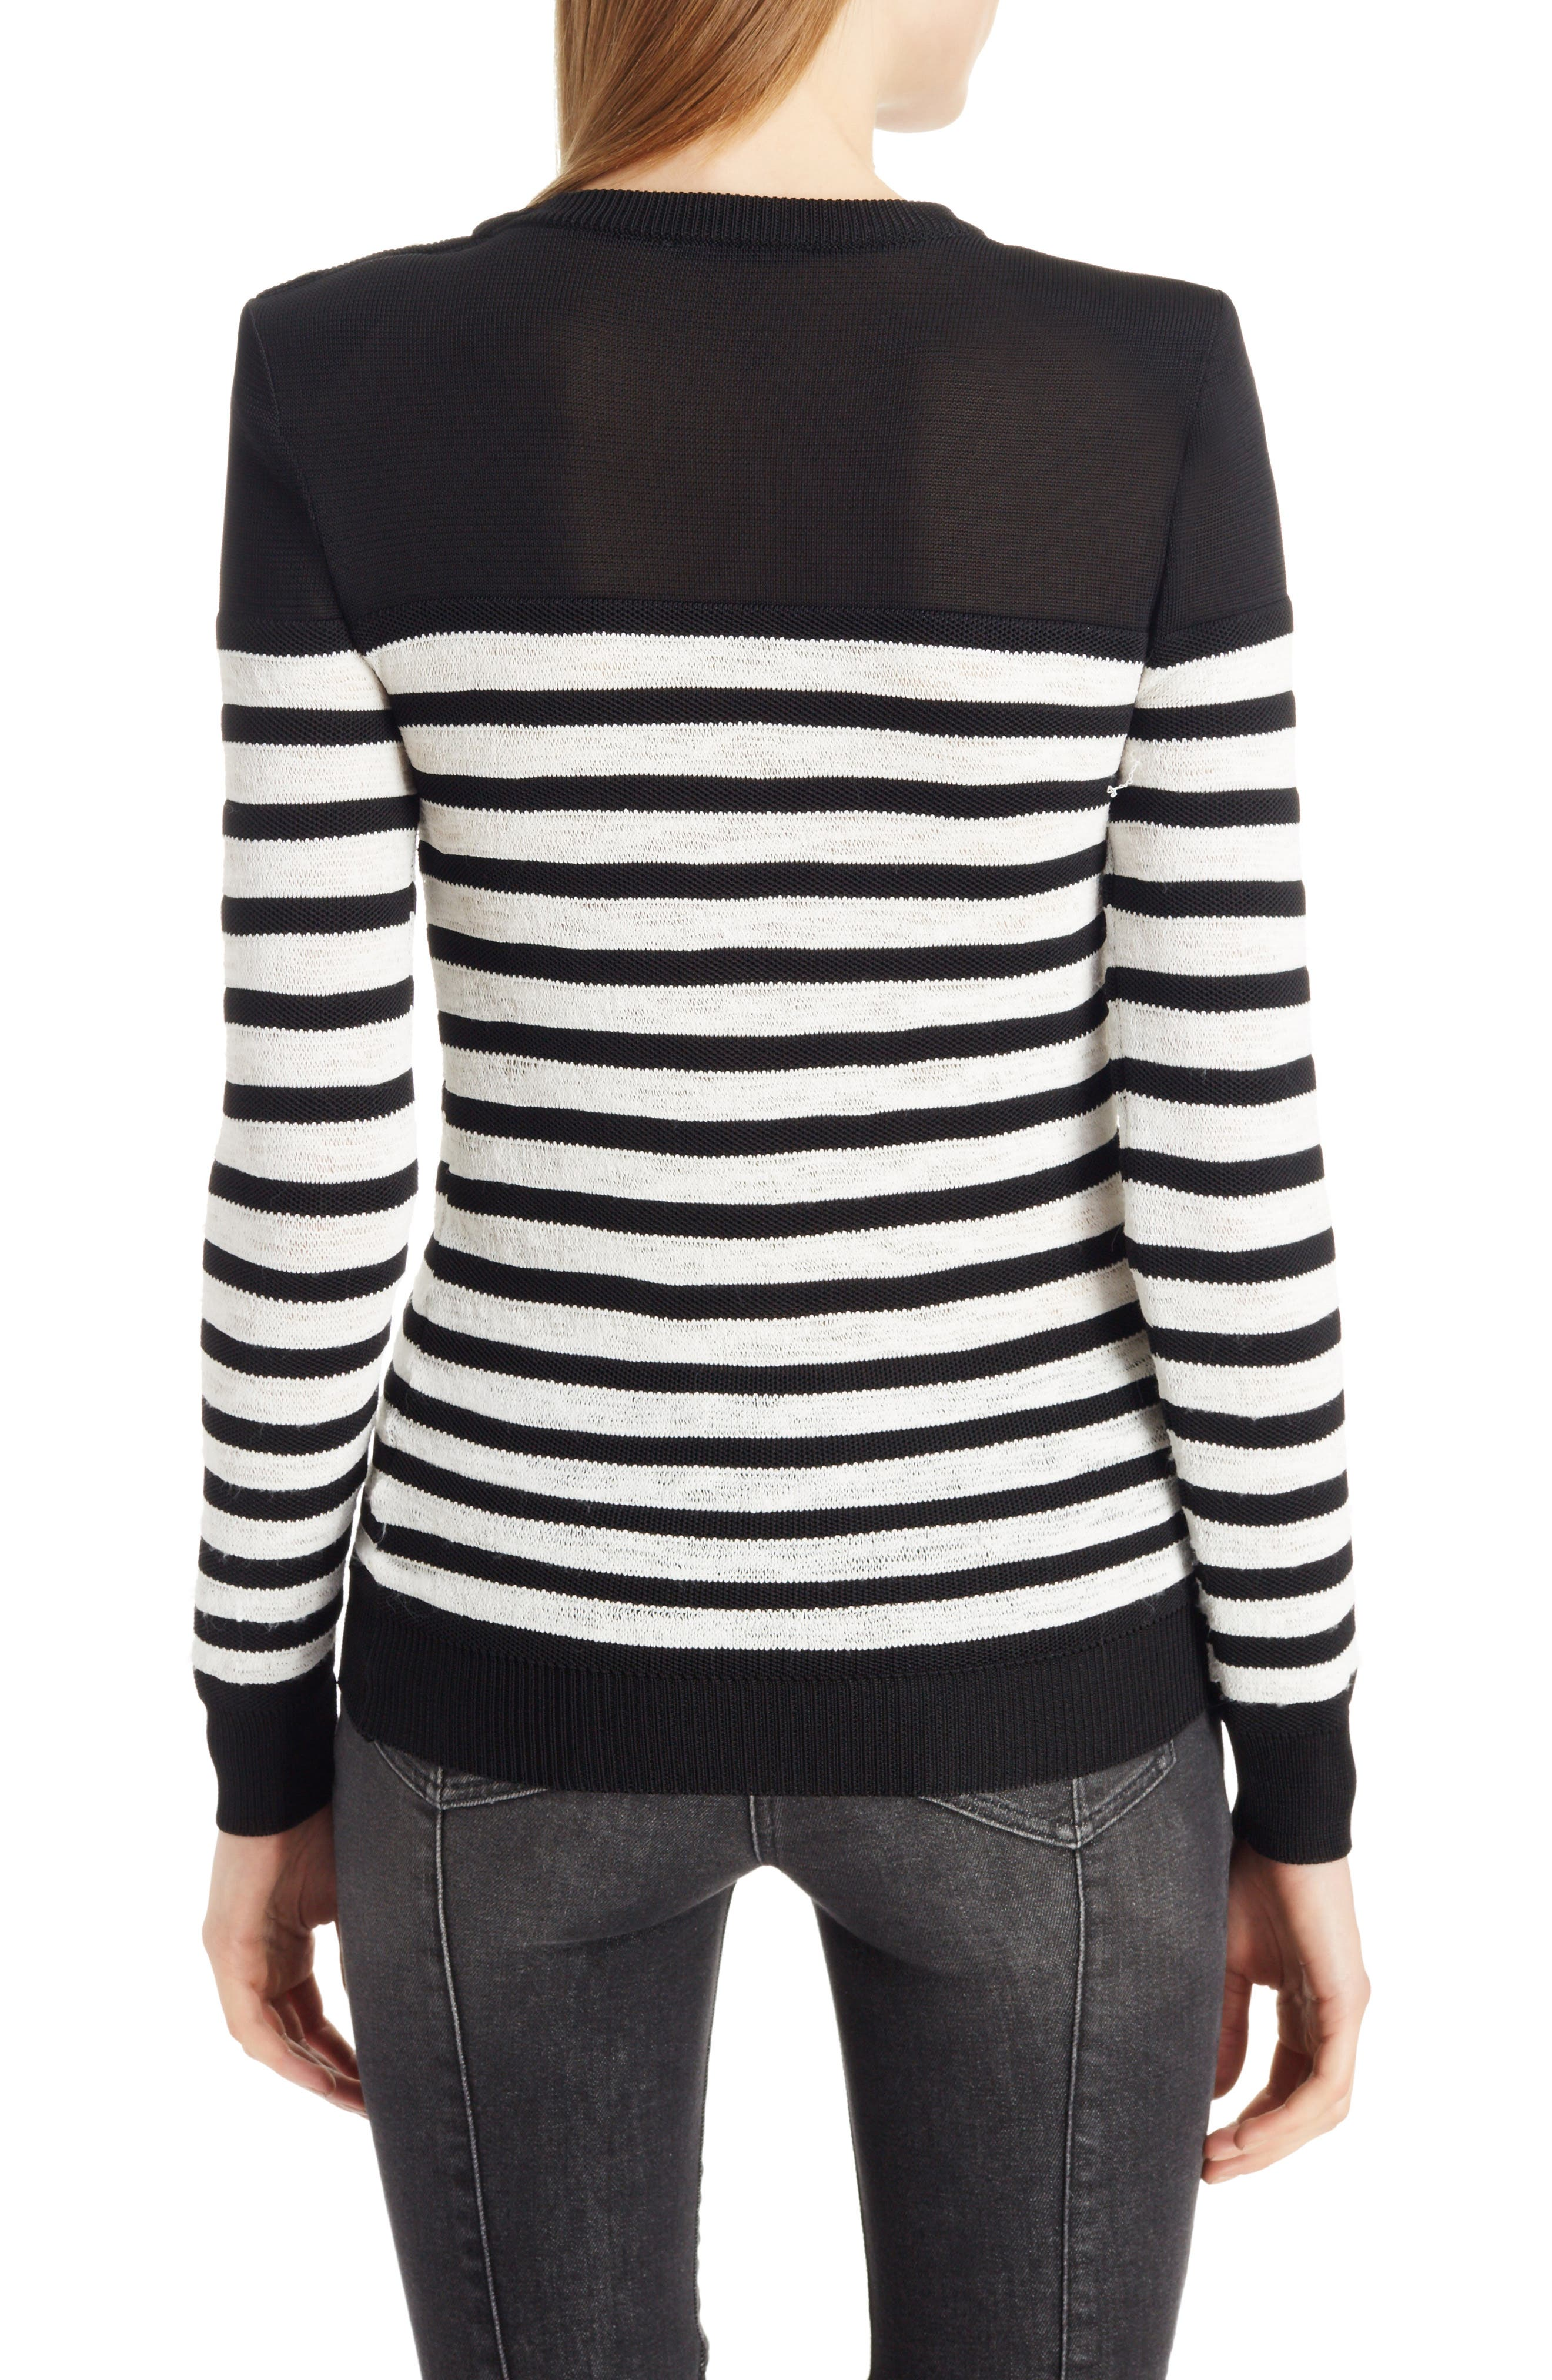 Marine Stripe Knit Sweater,                             Alternate thumbnail 2, color,                             Black And White